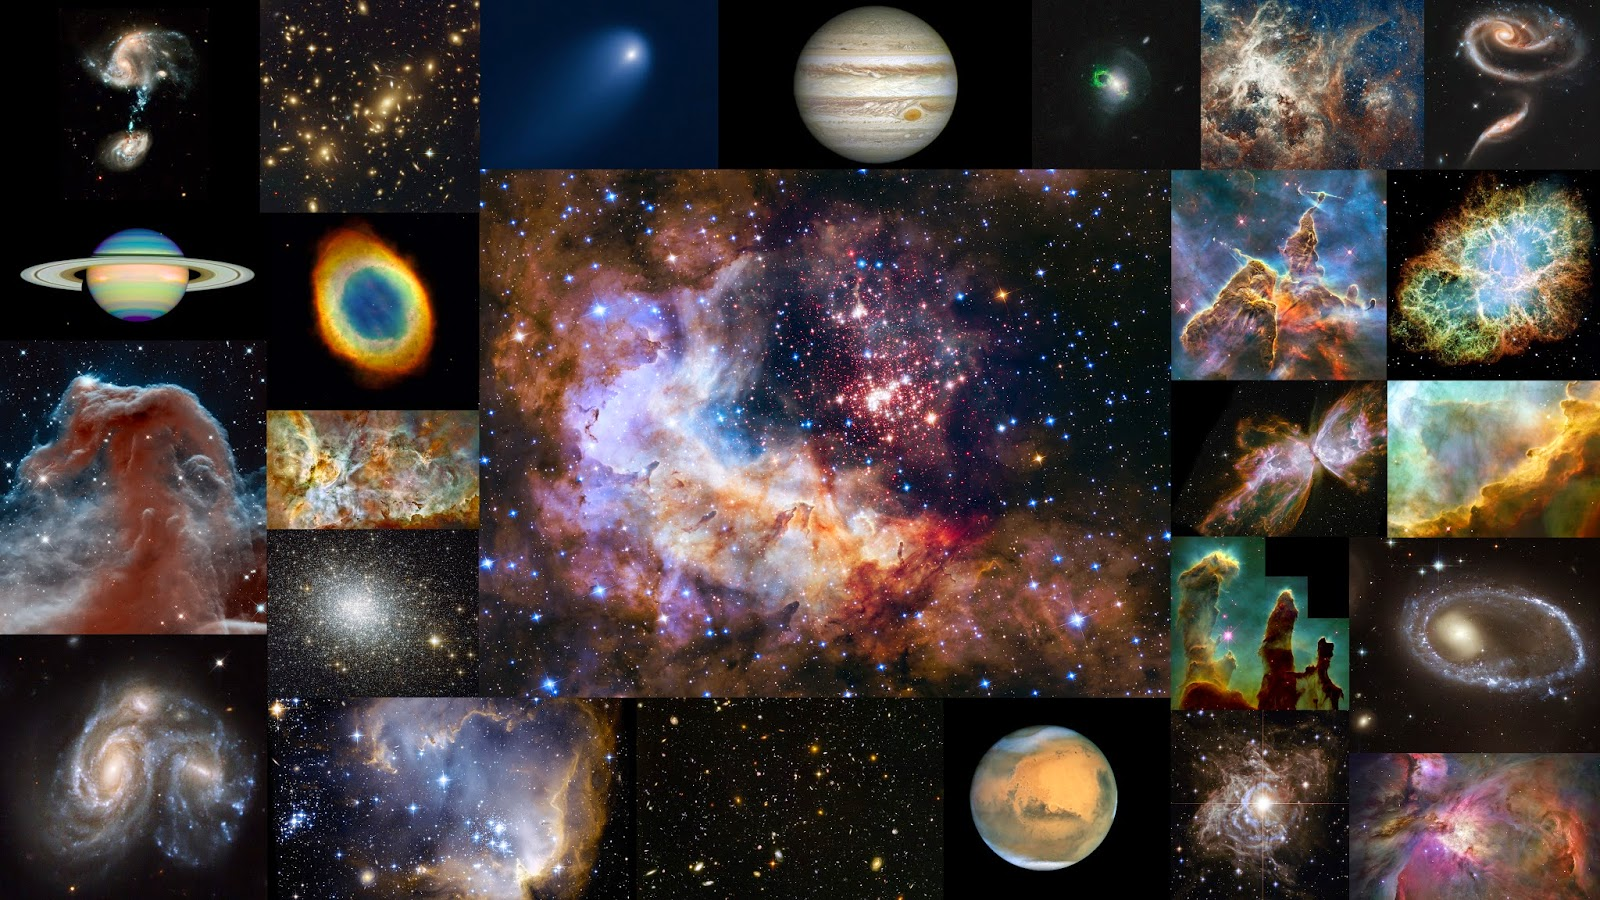 From planets to planetary nebula, and from star formation to supernova explosions, the NASA/ESA Hubble Space Telescope has captured a wealth of astronomical objects in its 25-year career. This montage presents 25 images that sample the space telescope's rich contribution to our understanding of the Universe around us. Credit: ESA